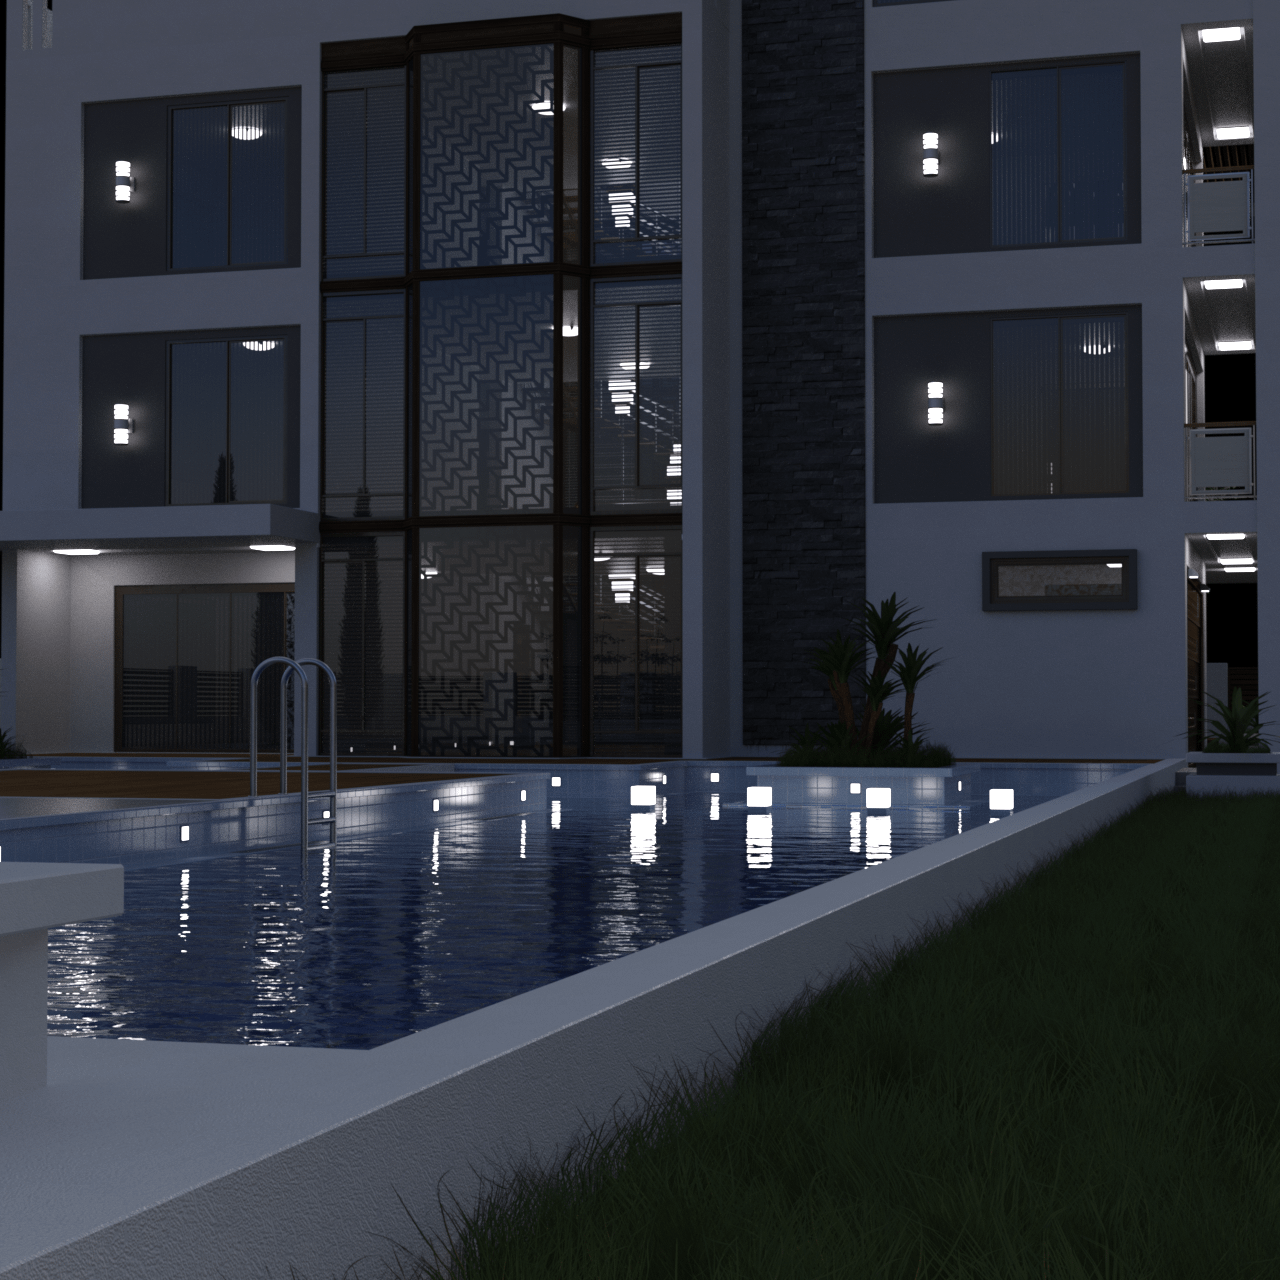 House 3d model with pool in front